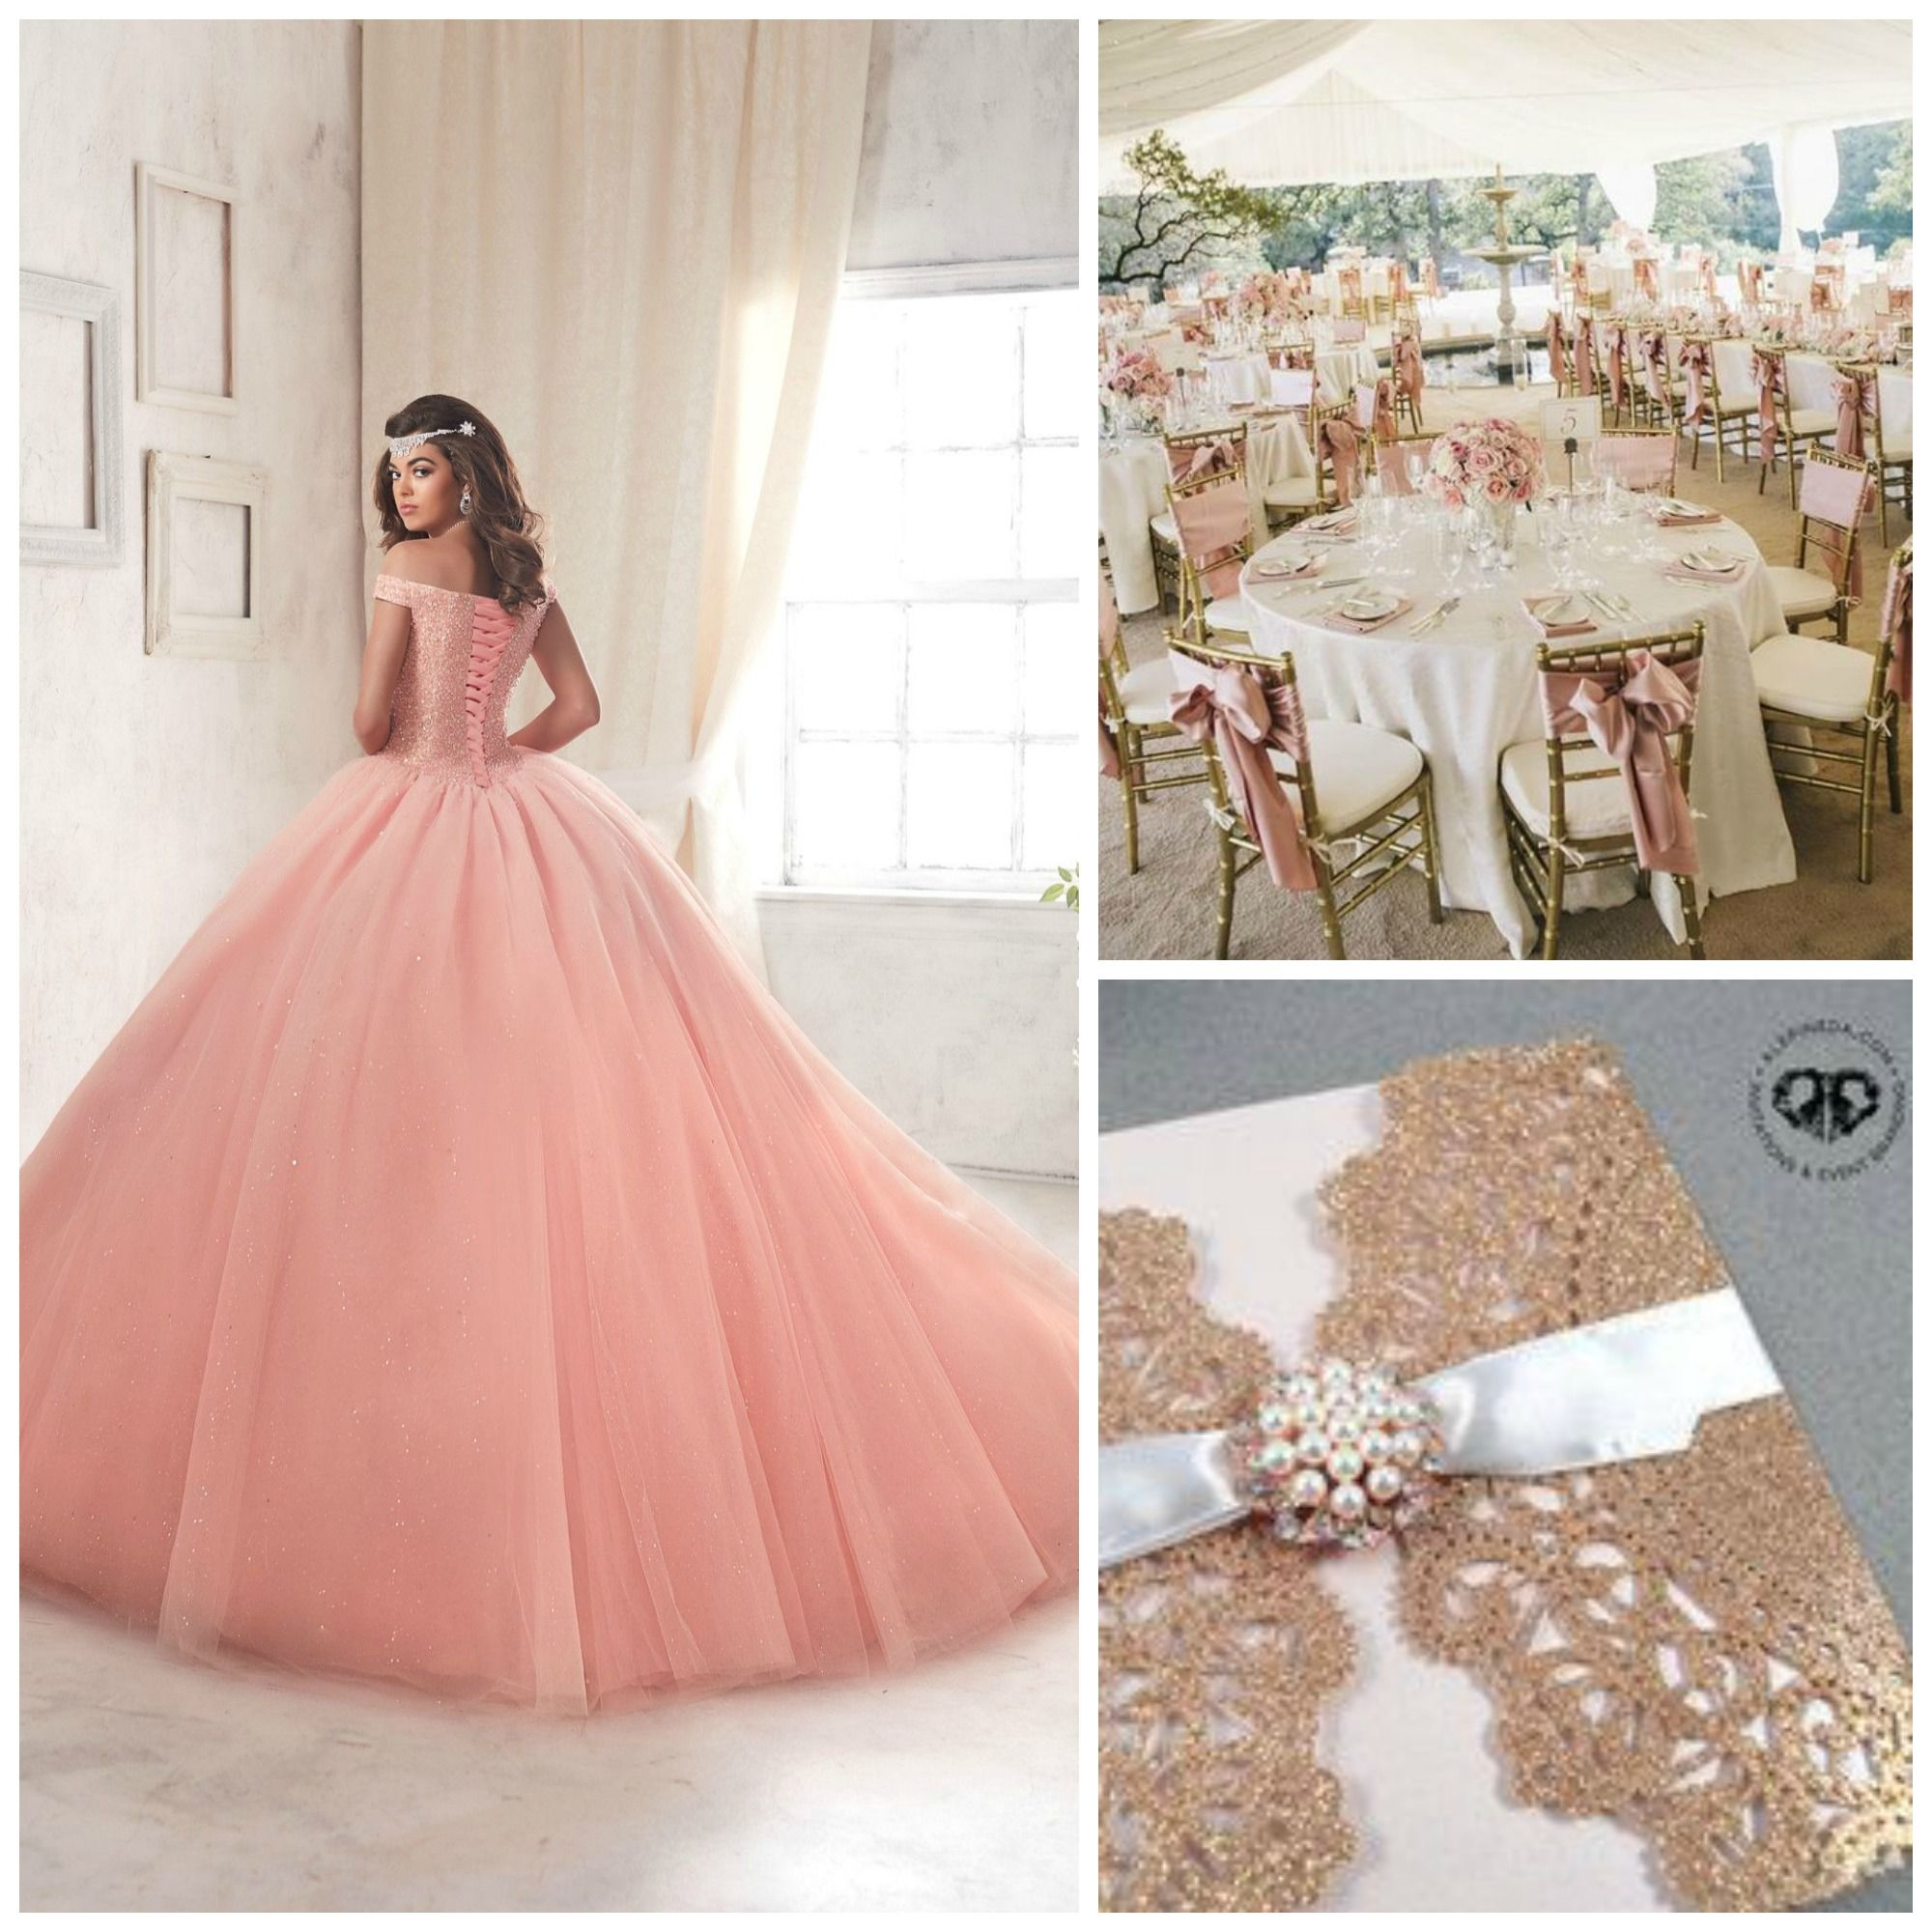 55b21d6c8e6 Pink   Gold Quinceanera Theme